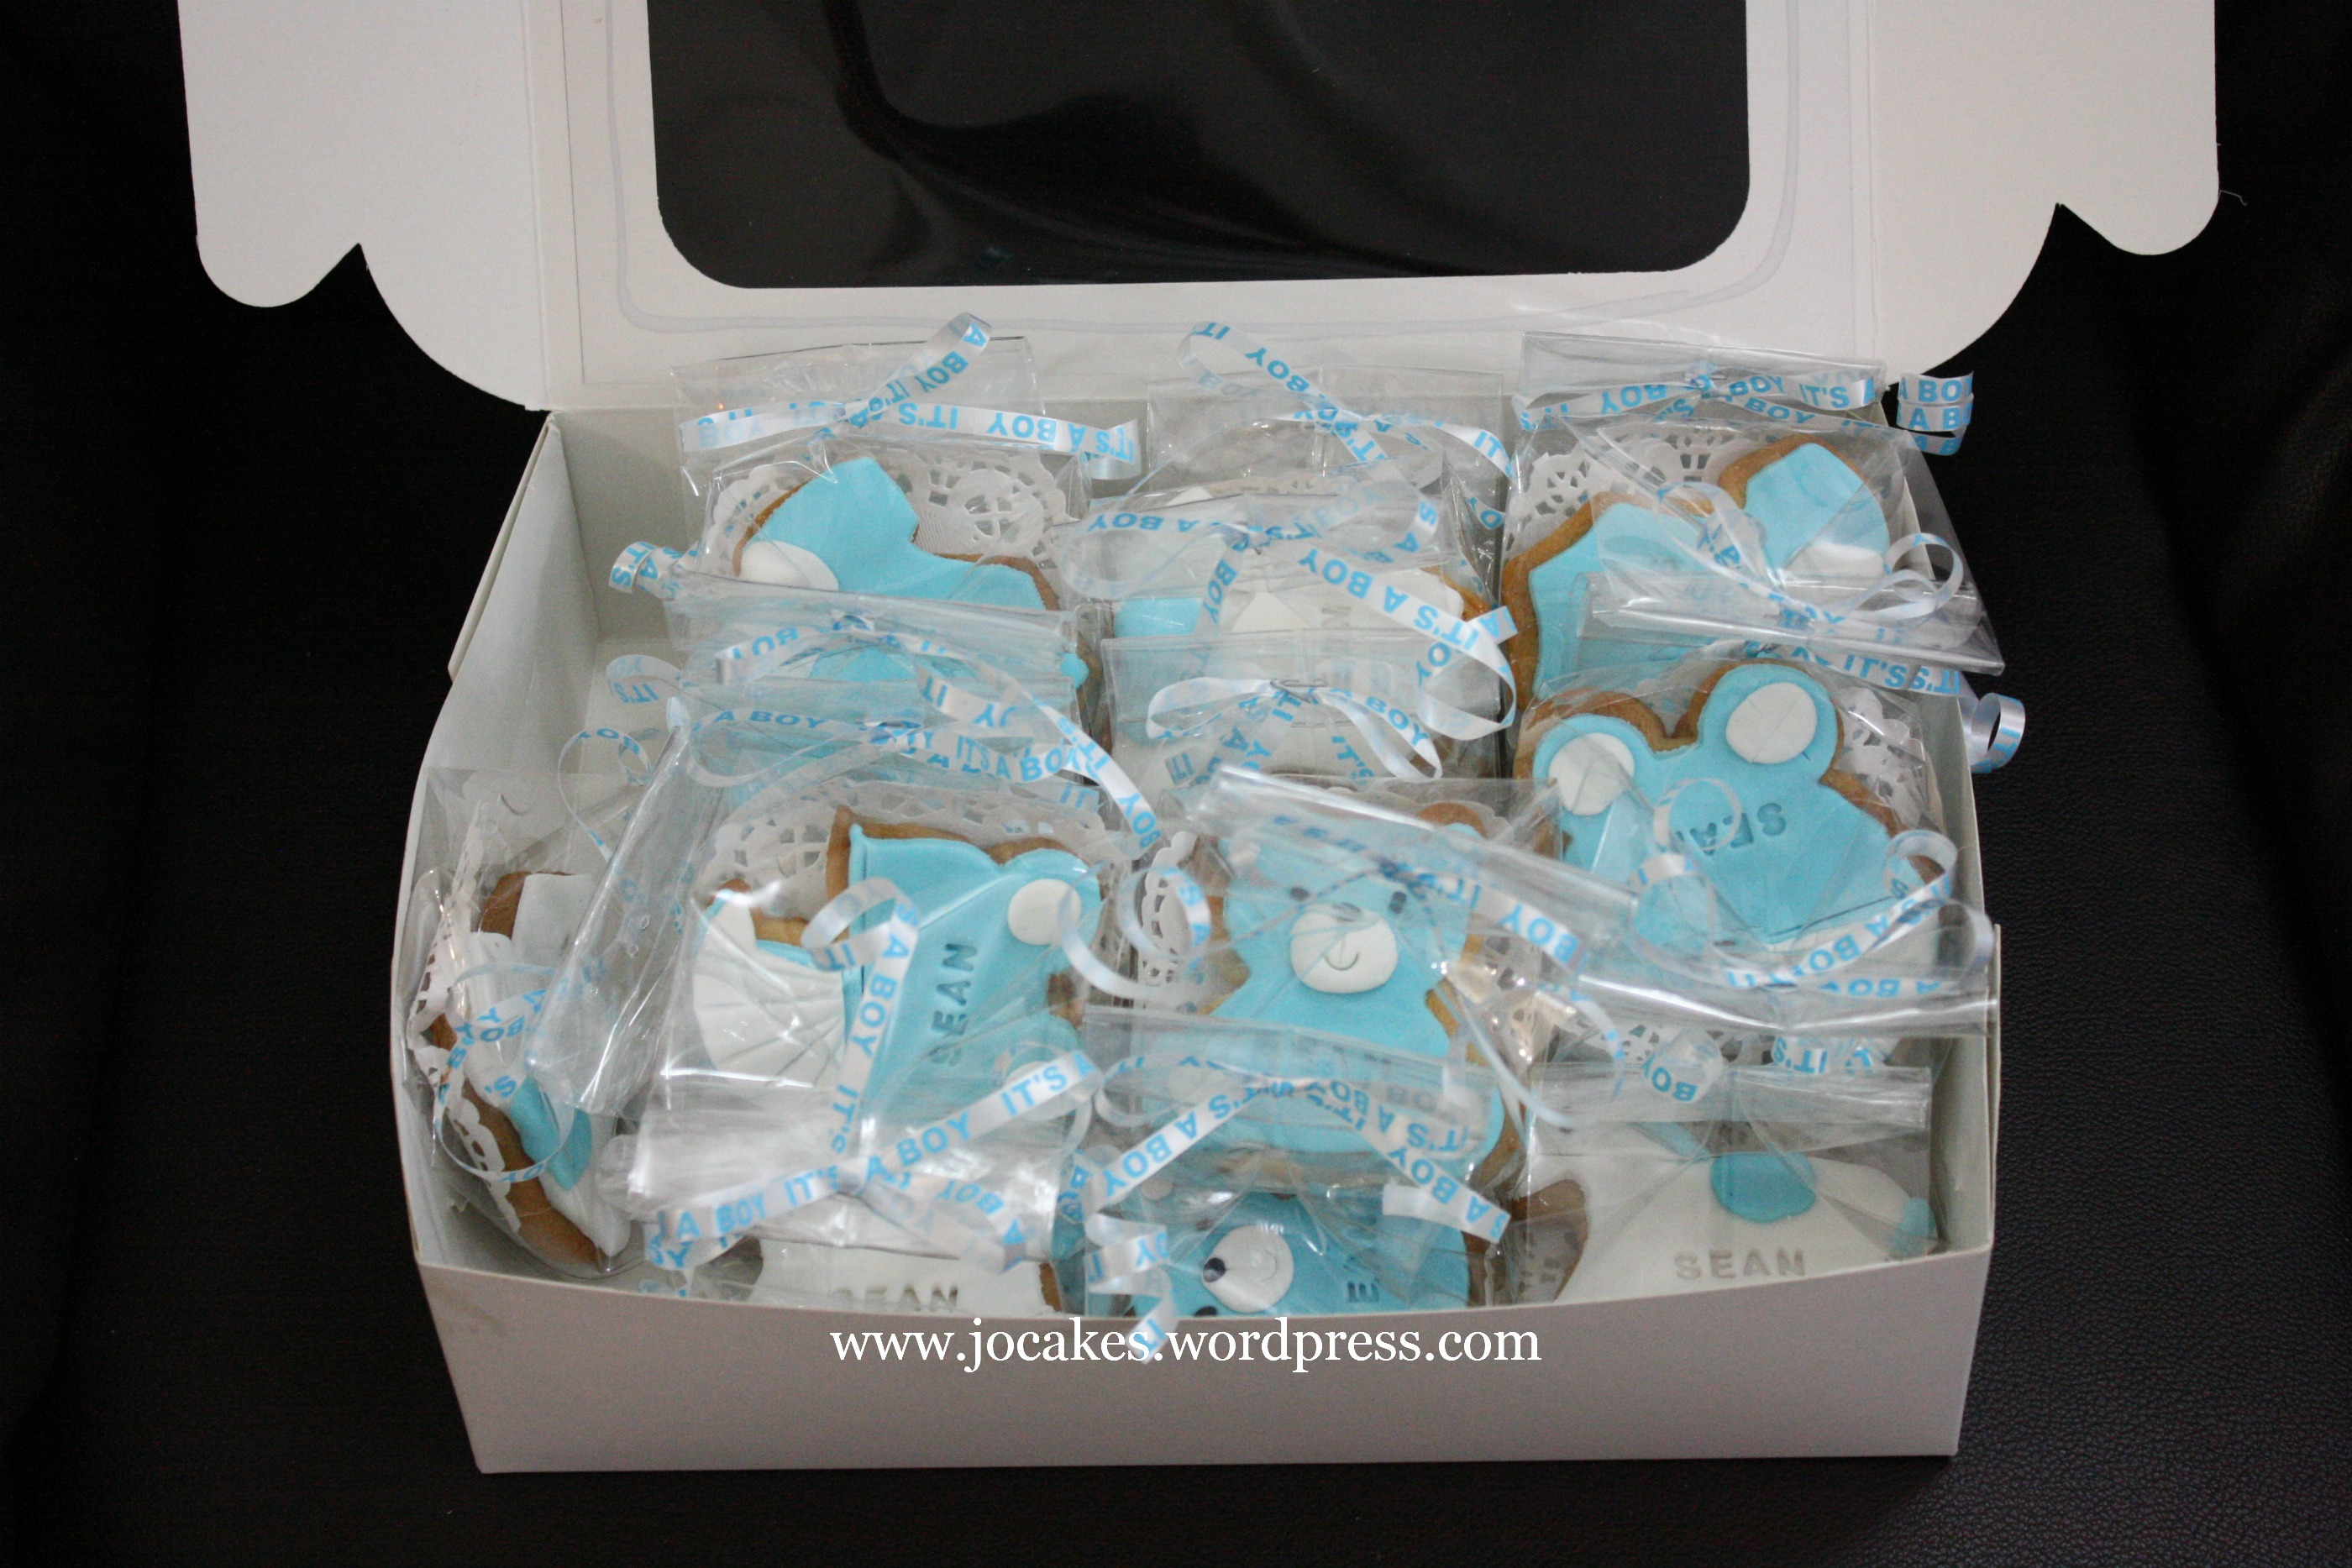 Decorated Cookies For Baby Fullmoon Jocakes